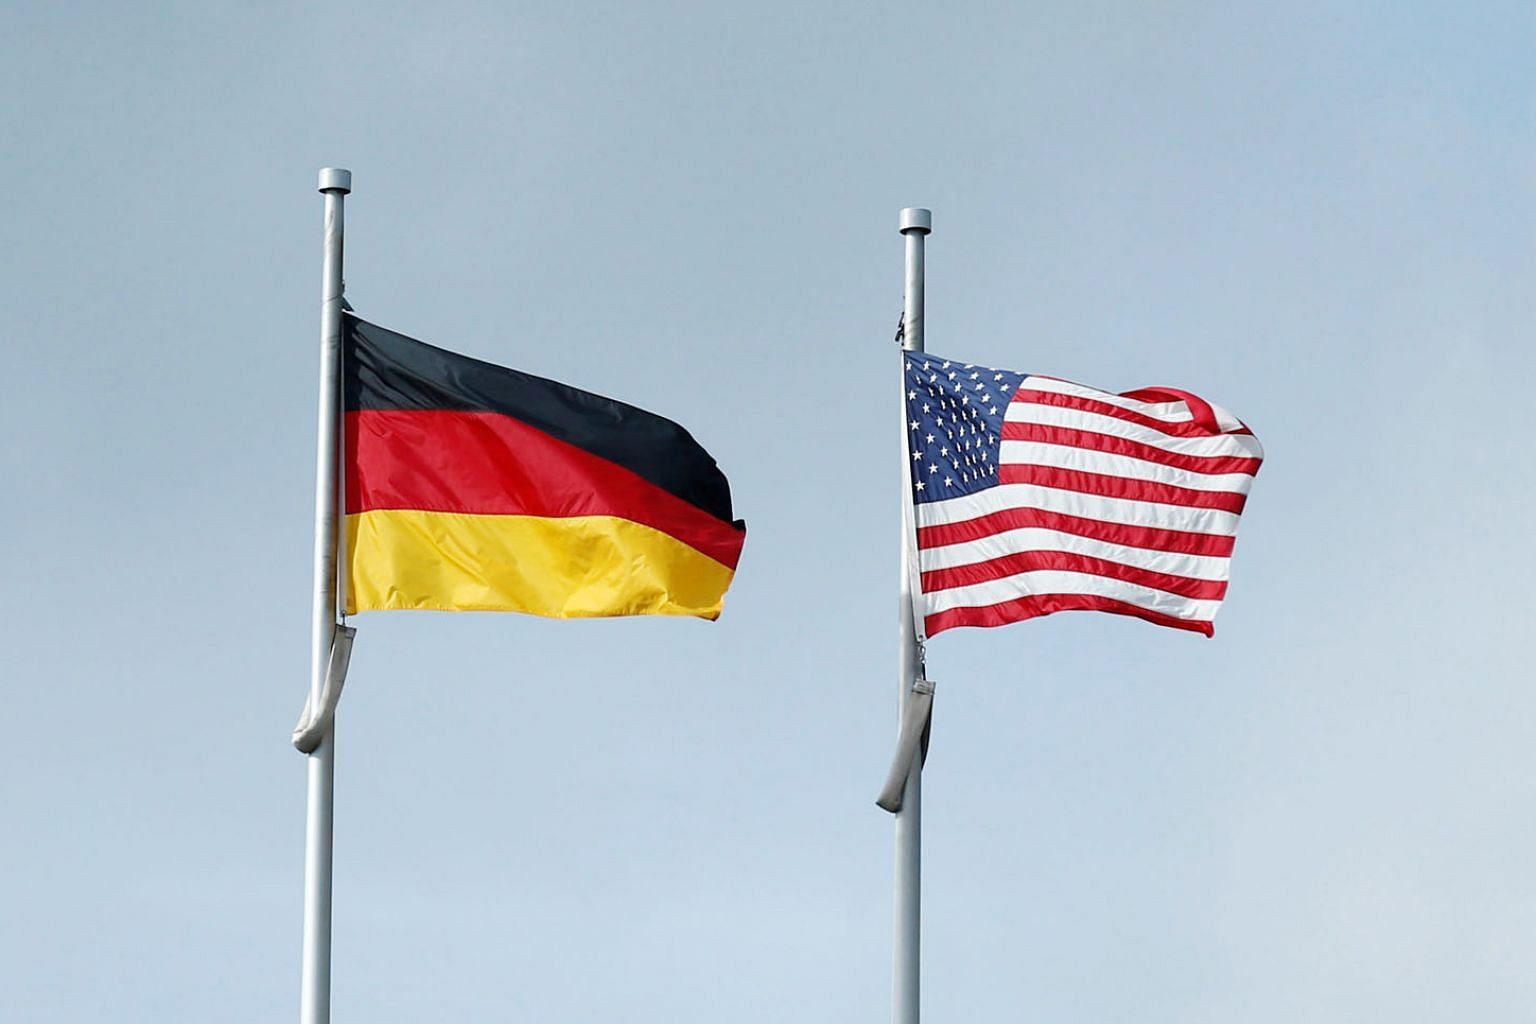 The German (left) and US flags. Chancellor Angela Merkel and President Donald Trump are not just miles, but probably a whole universe, apart.